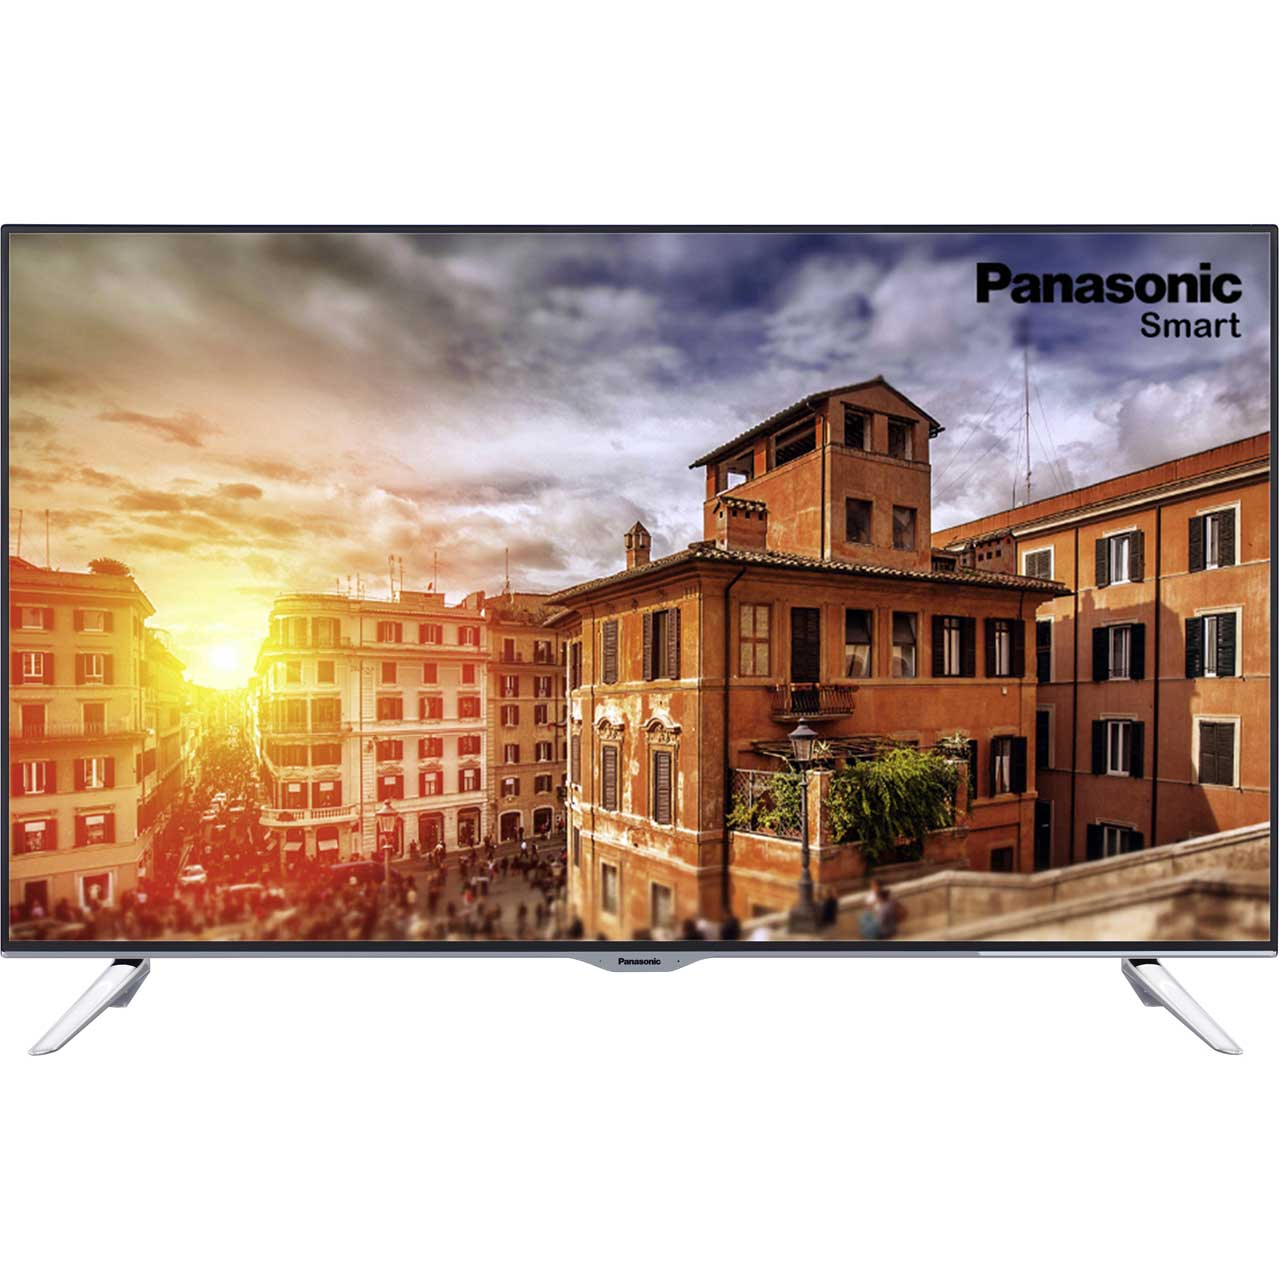 http://media.ao.com/en-GB/Productimages/Images/rvLarge/panasonic_cx400bseries_ledtv_01_l.jpg